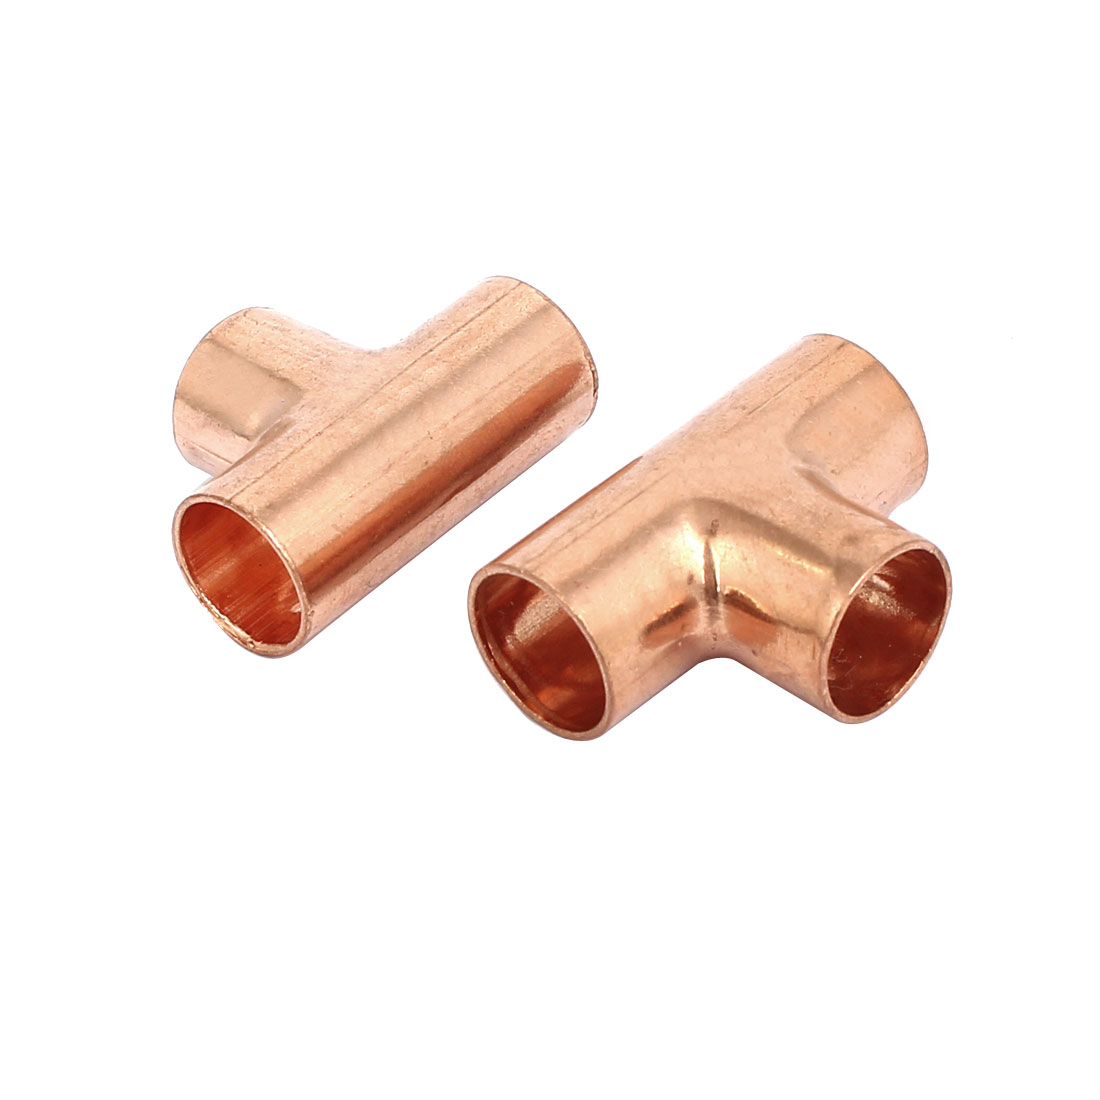 12mm Air Conditioner Copper Tee Joint Seperation Tube Connector 2pcs